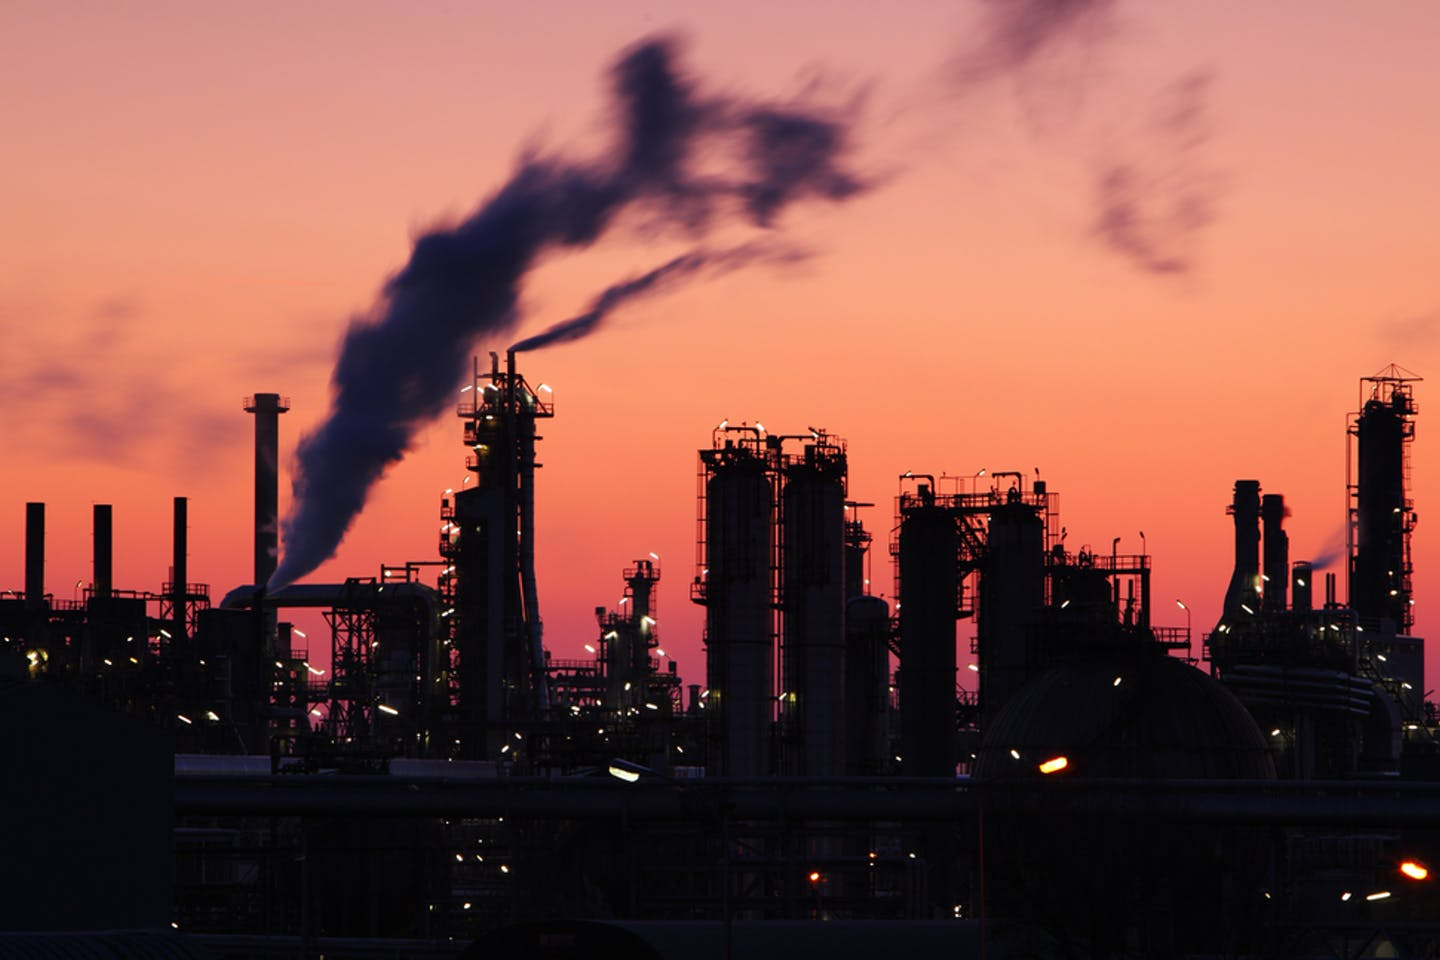 Oil refineries and fossil fuels